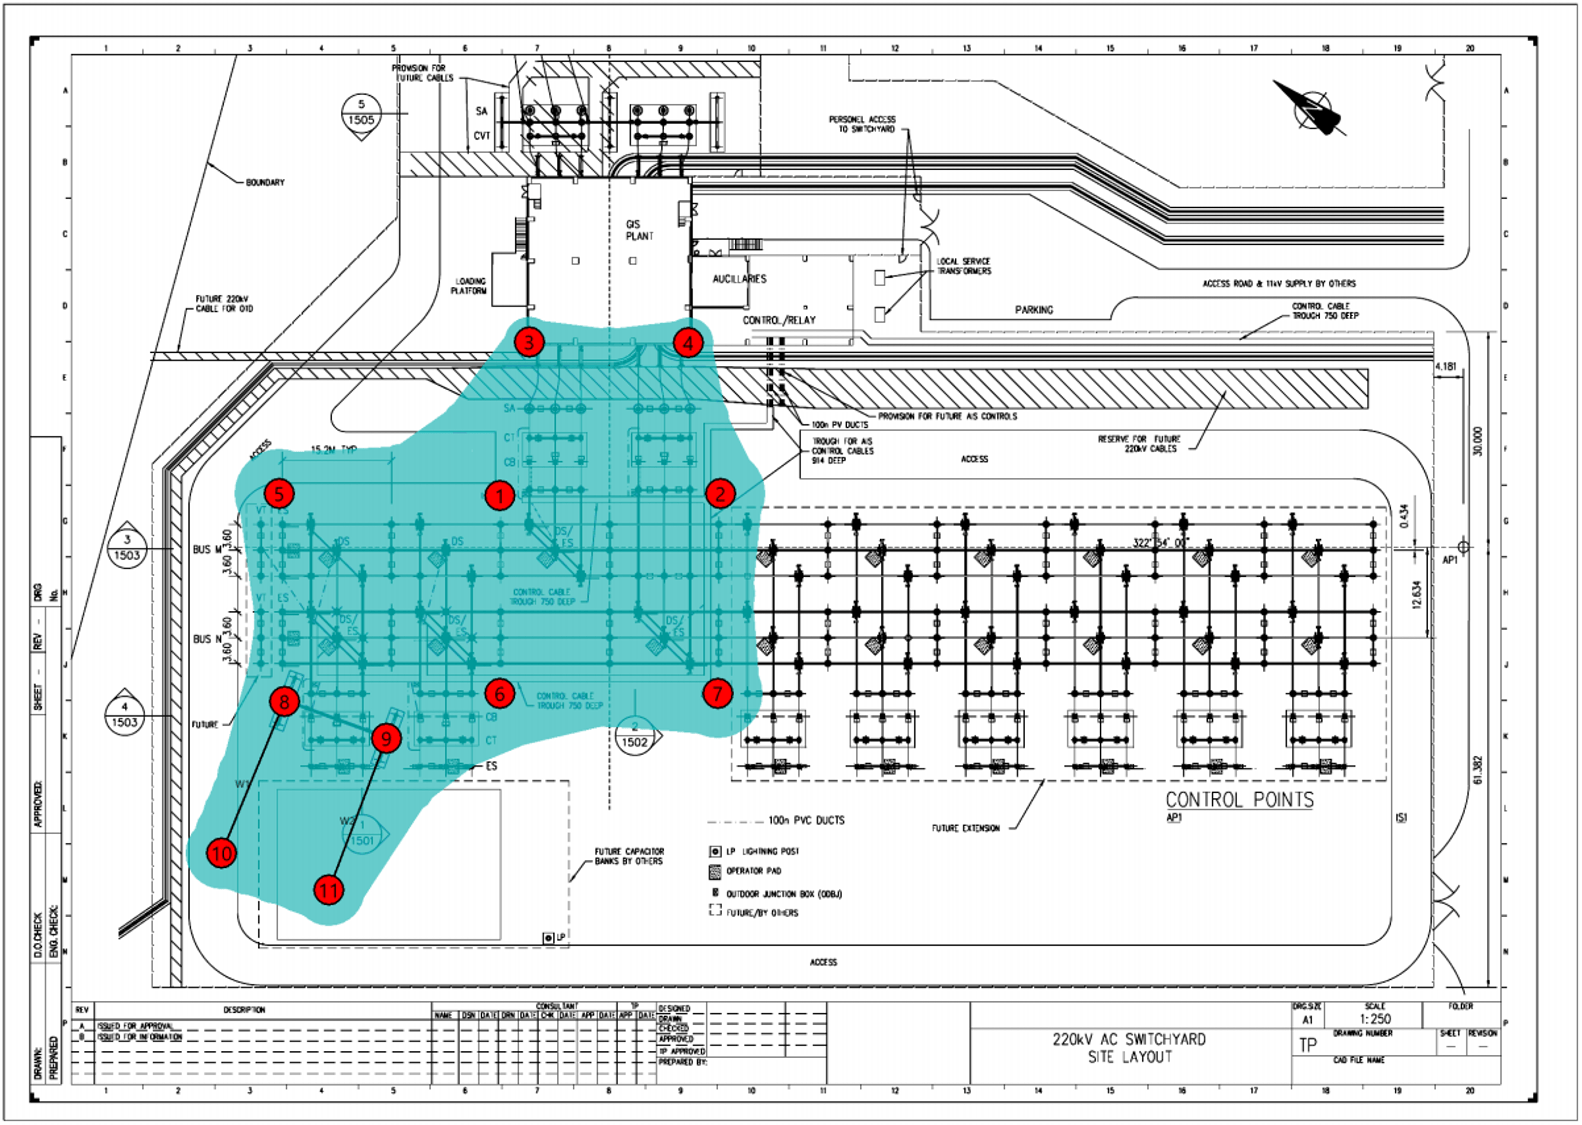 Figure 4 Substation with Zones of Protection using Rolling Sphere Method ELEK SafeGrid Software - Lightning Protection Design for Substations